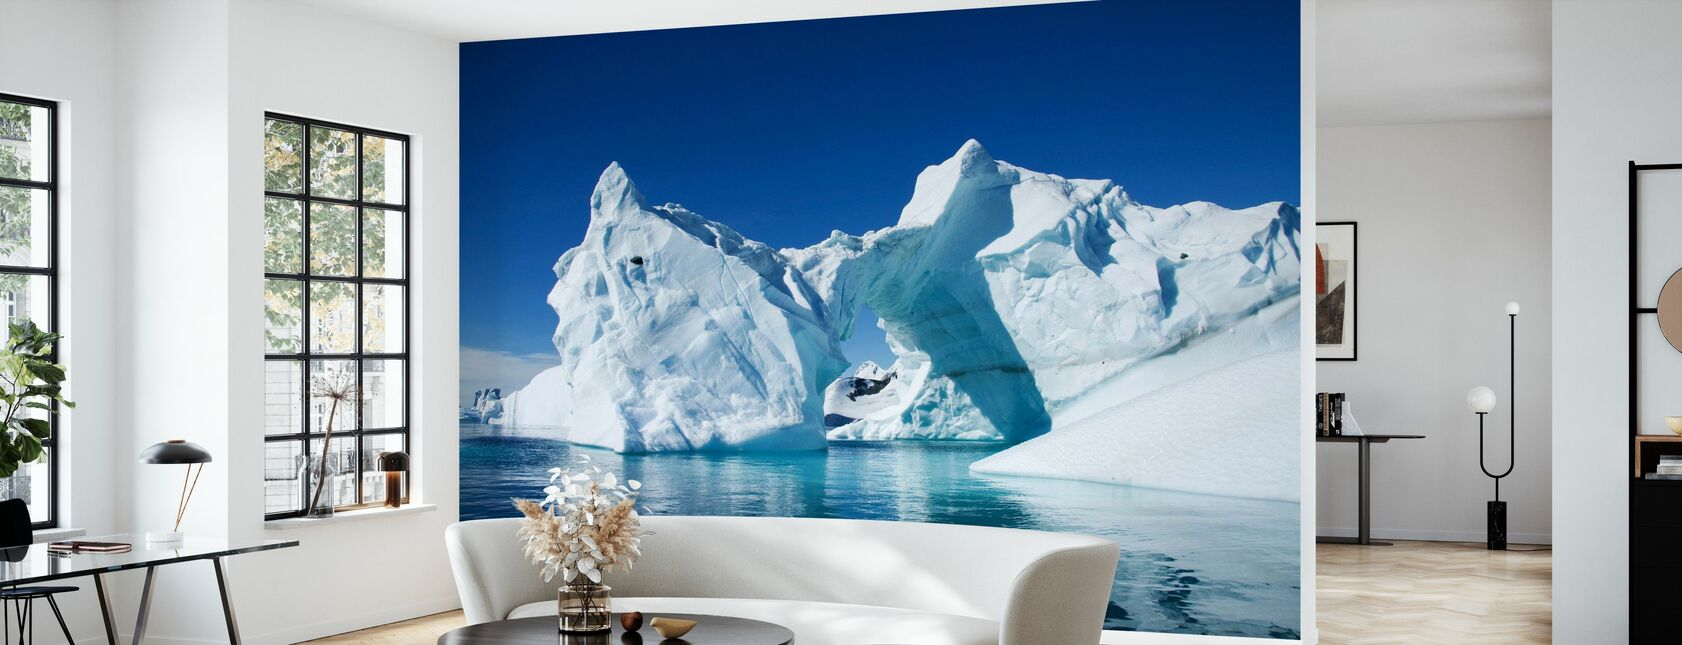 Iceberg Antarctica - Wallpaper - Living Room